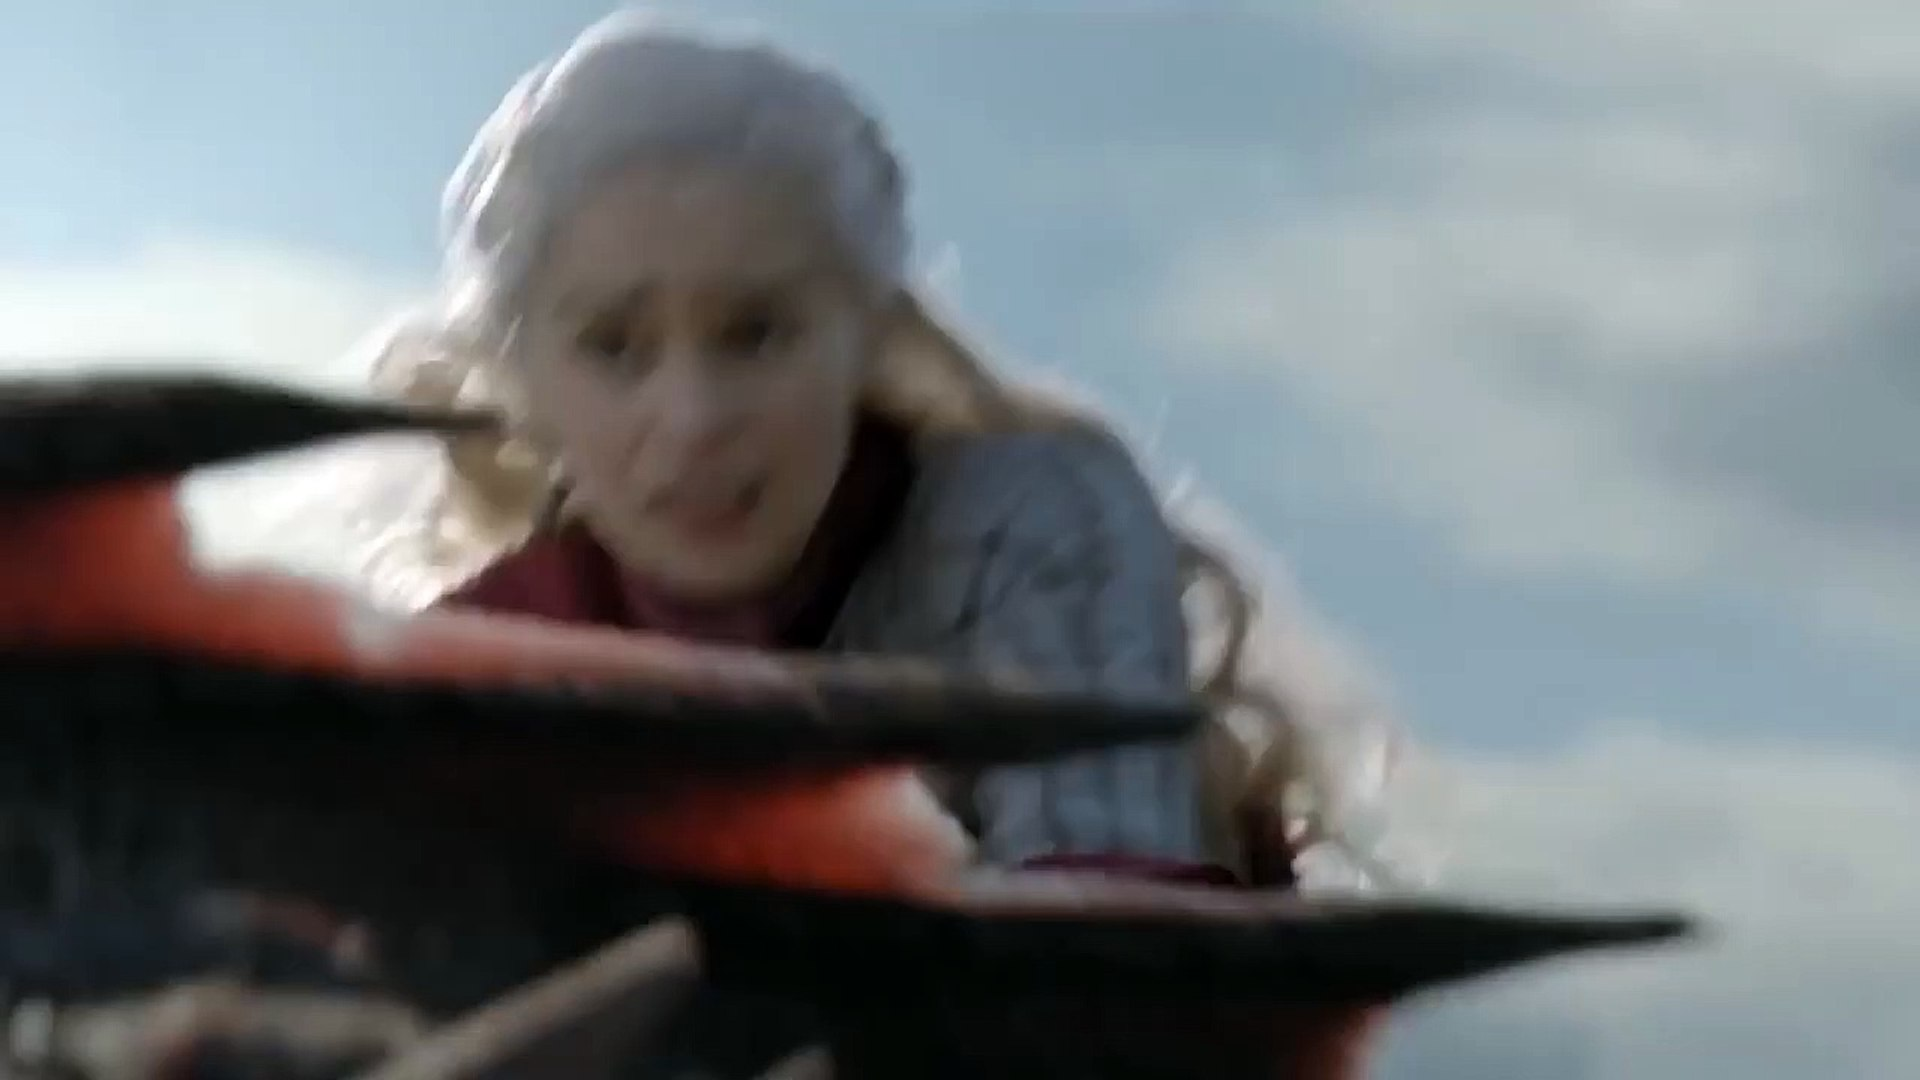 Game of Thrones S8E4 - Rhaegal is killed by Euron and the Ironfleet  gameofthrones